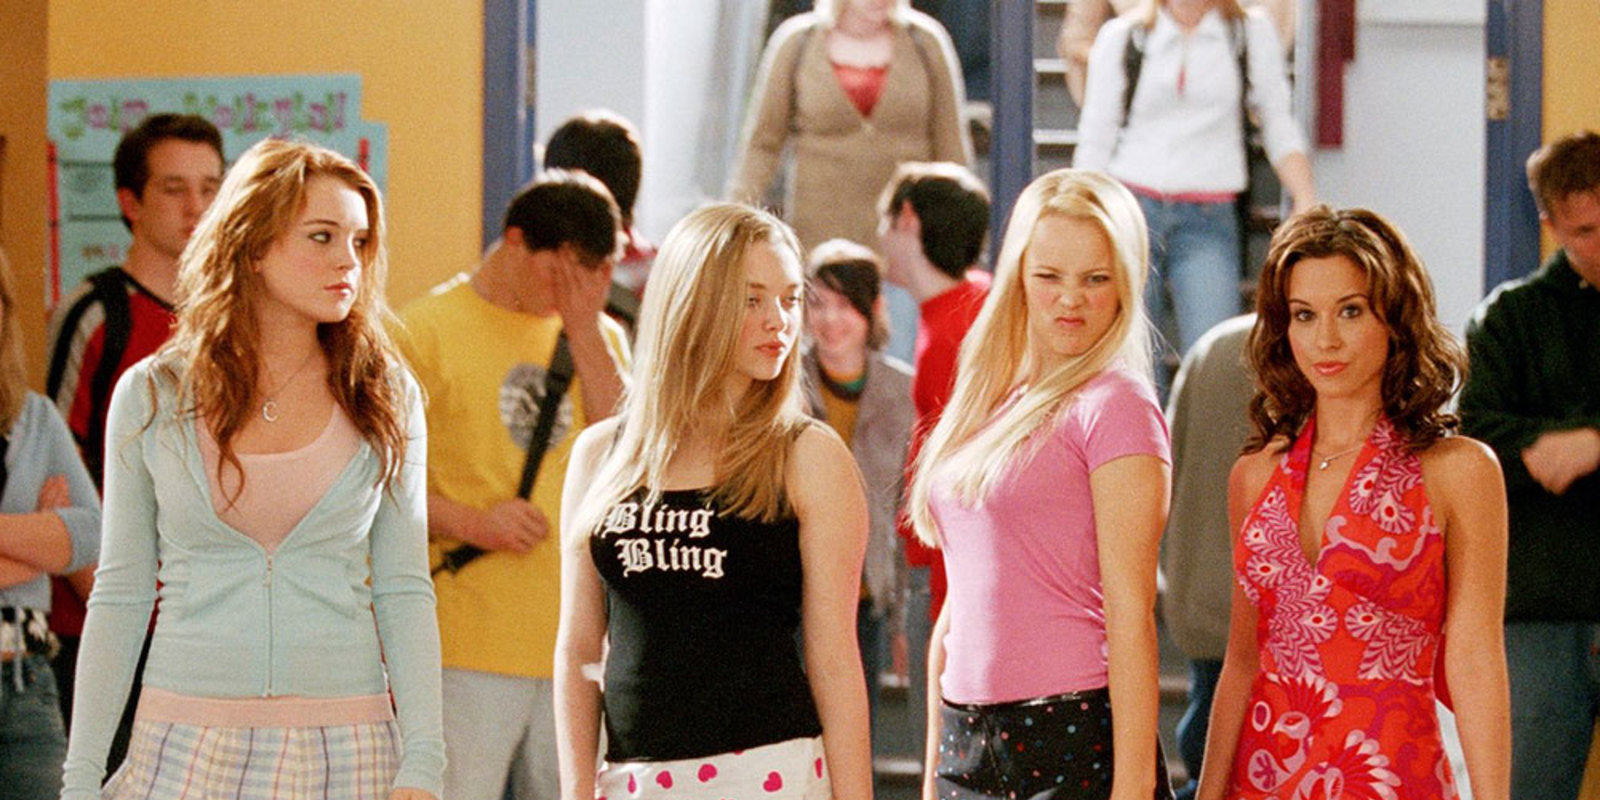 mean girls subculture Chav (/ t ʃ æ v / chav) (charver of the 21st century by the british mass media to refer to an anti-social youth subculture in the united clothes the girls.